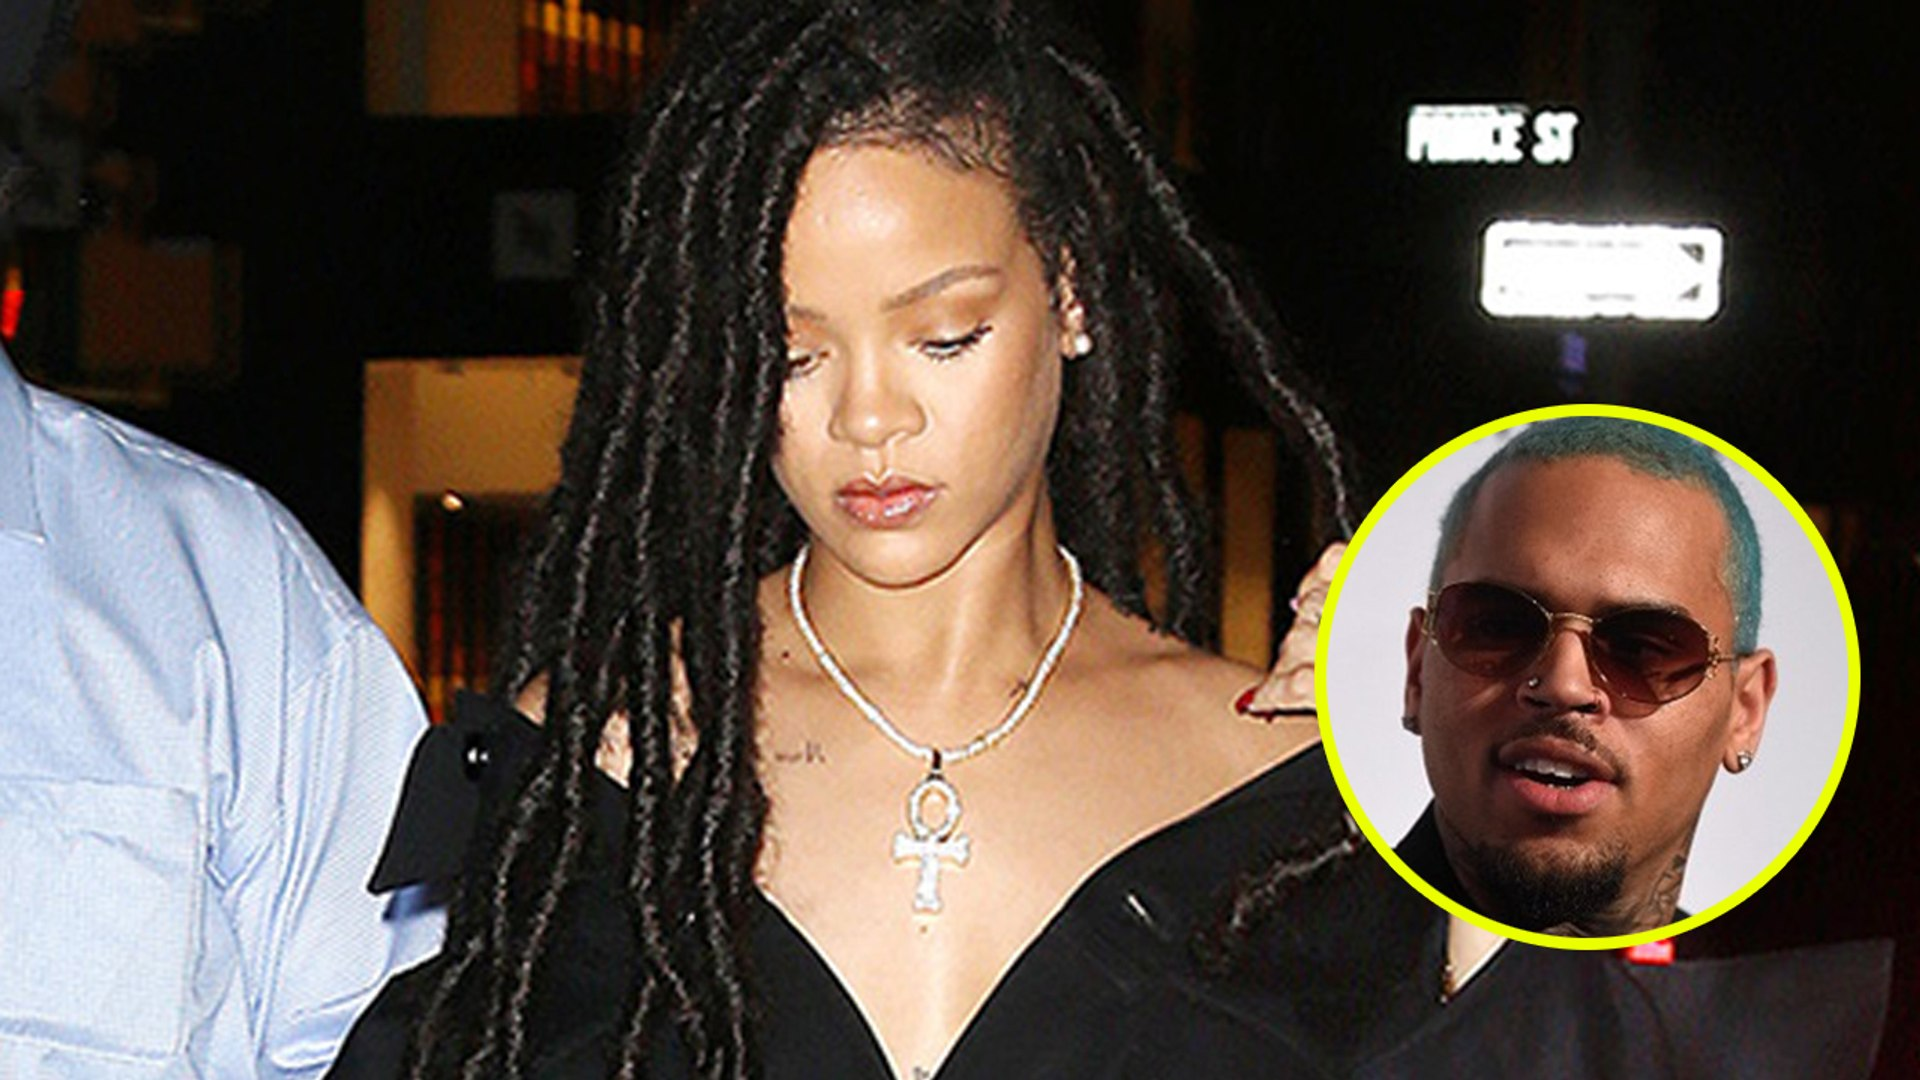 Rihanna Slams Ex Chris Brown in Cryptic Post